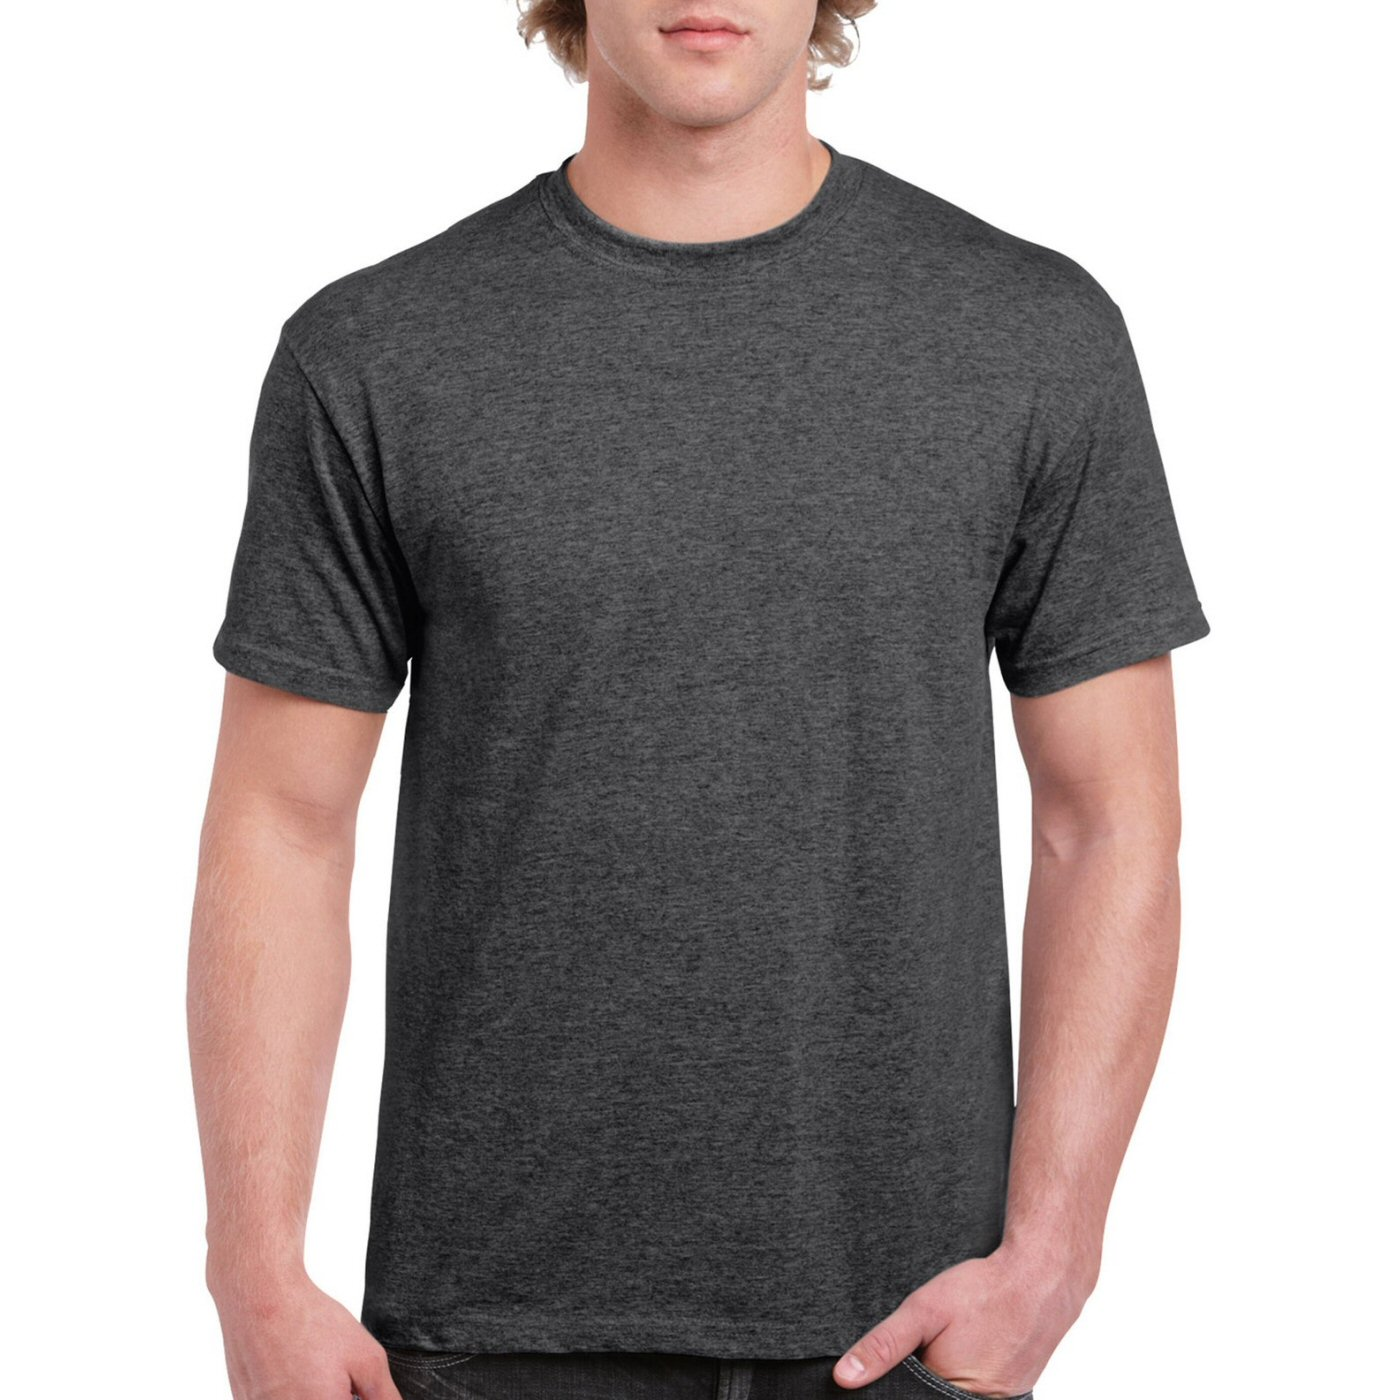 Charcoal Melange Plain Round Neck T-shirt image